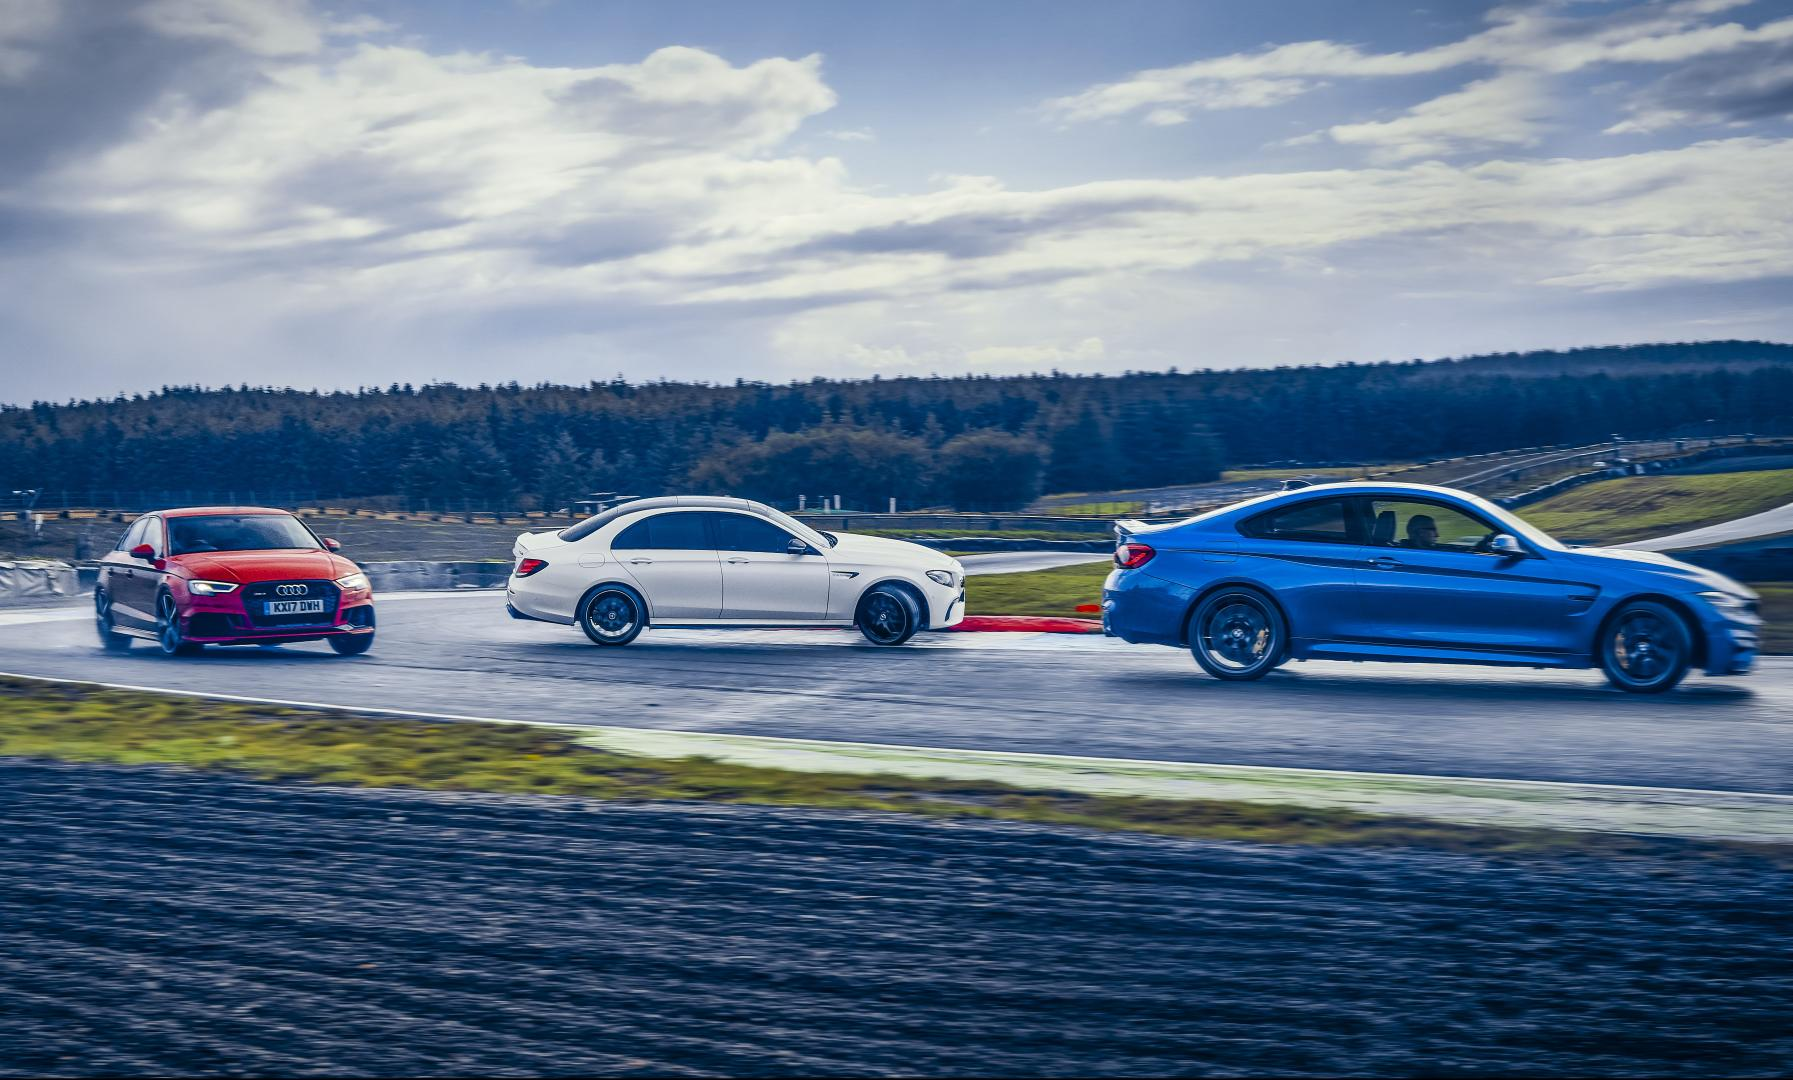 Mercedes-AMG E 63 S vs BMW M4 CS vs Audi RS 3